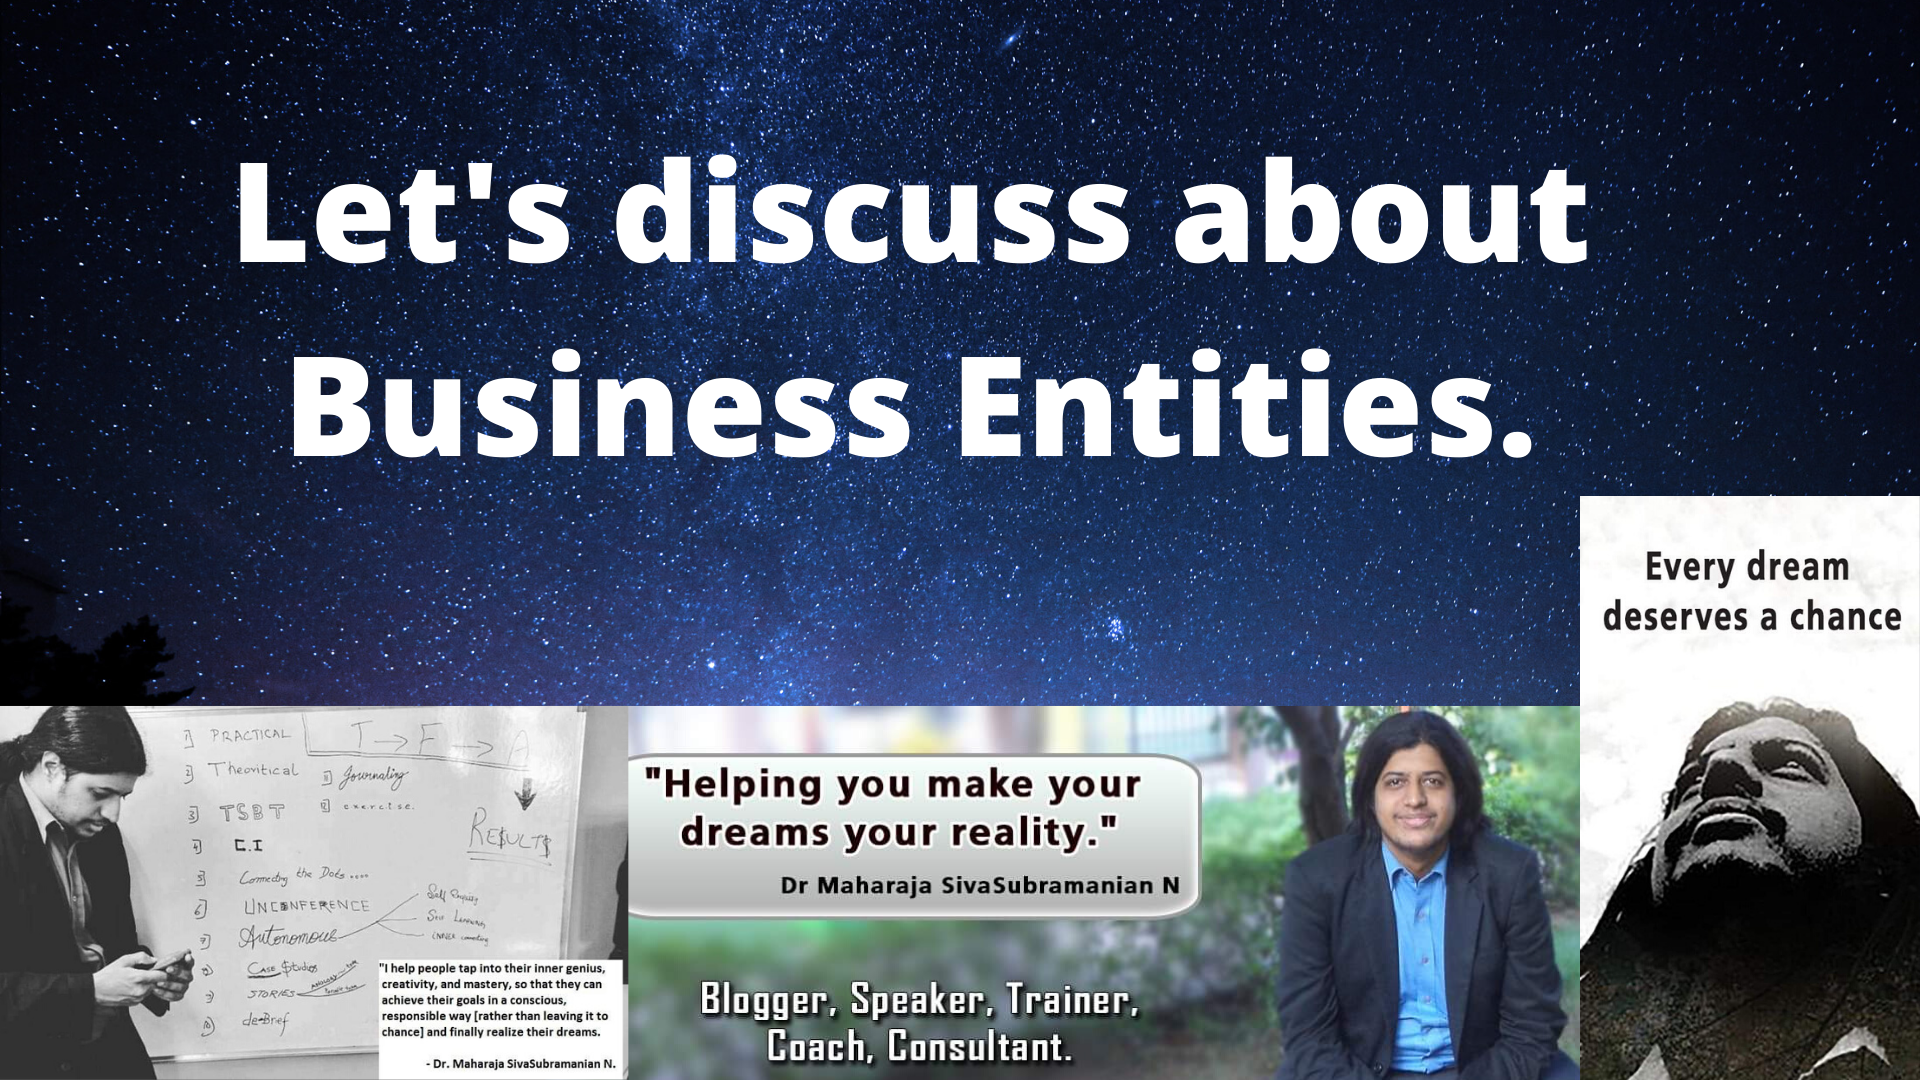 Let's discuss about Business Entities.